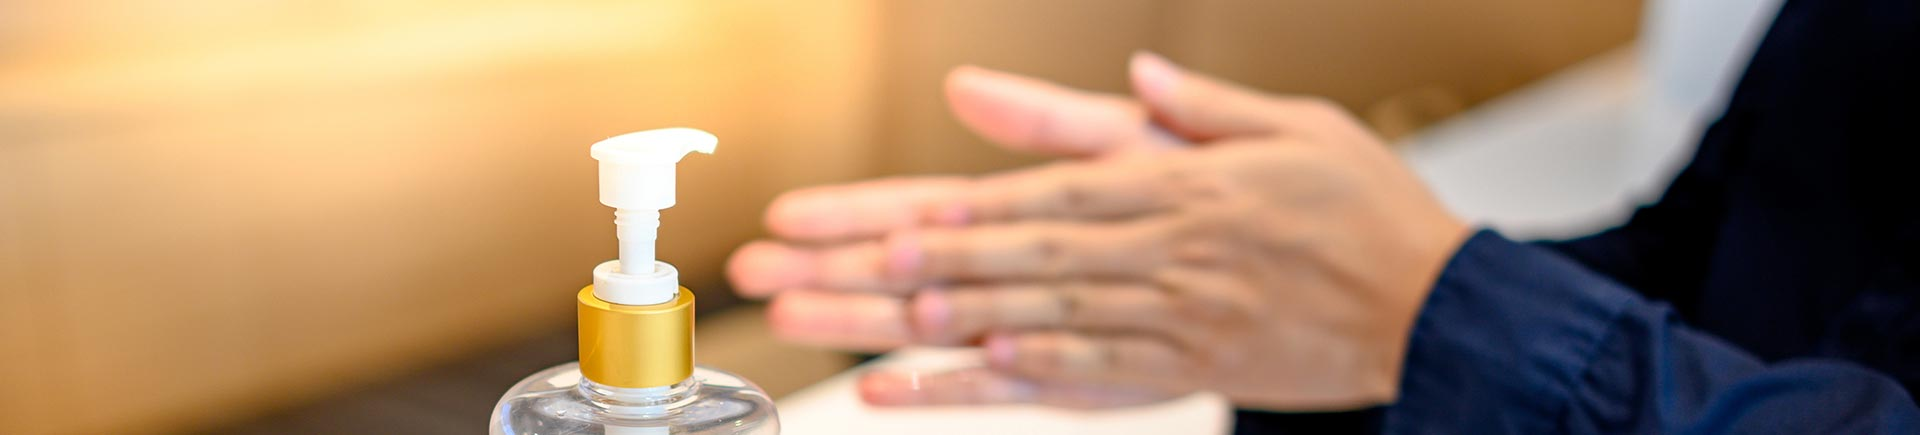 Washing hands with alcohol sanitizers or alcohol gel from pump bottle.